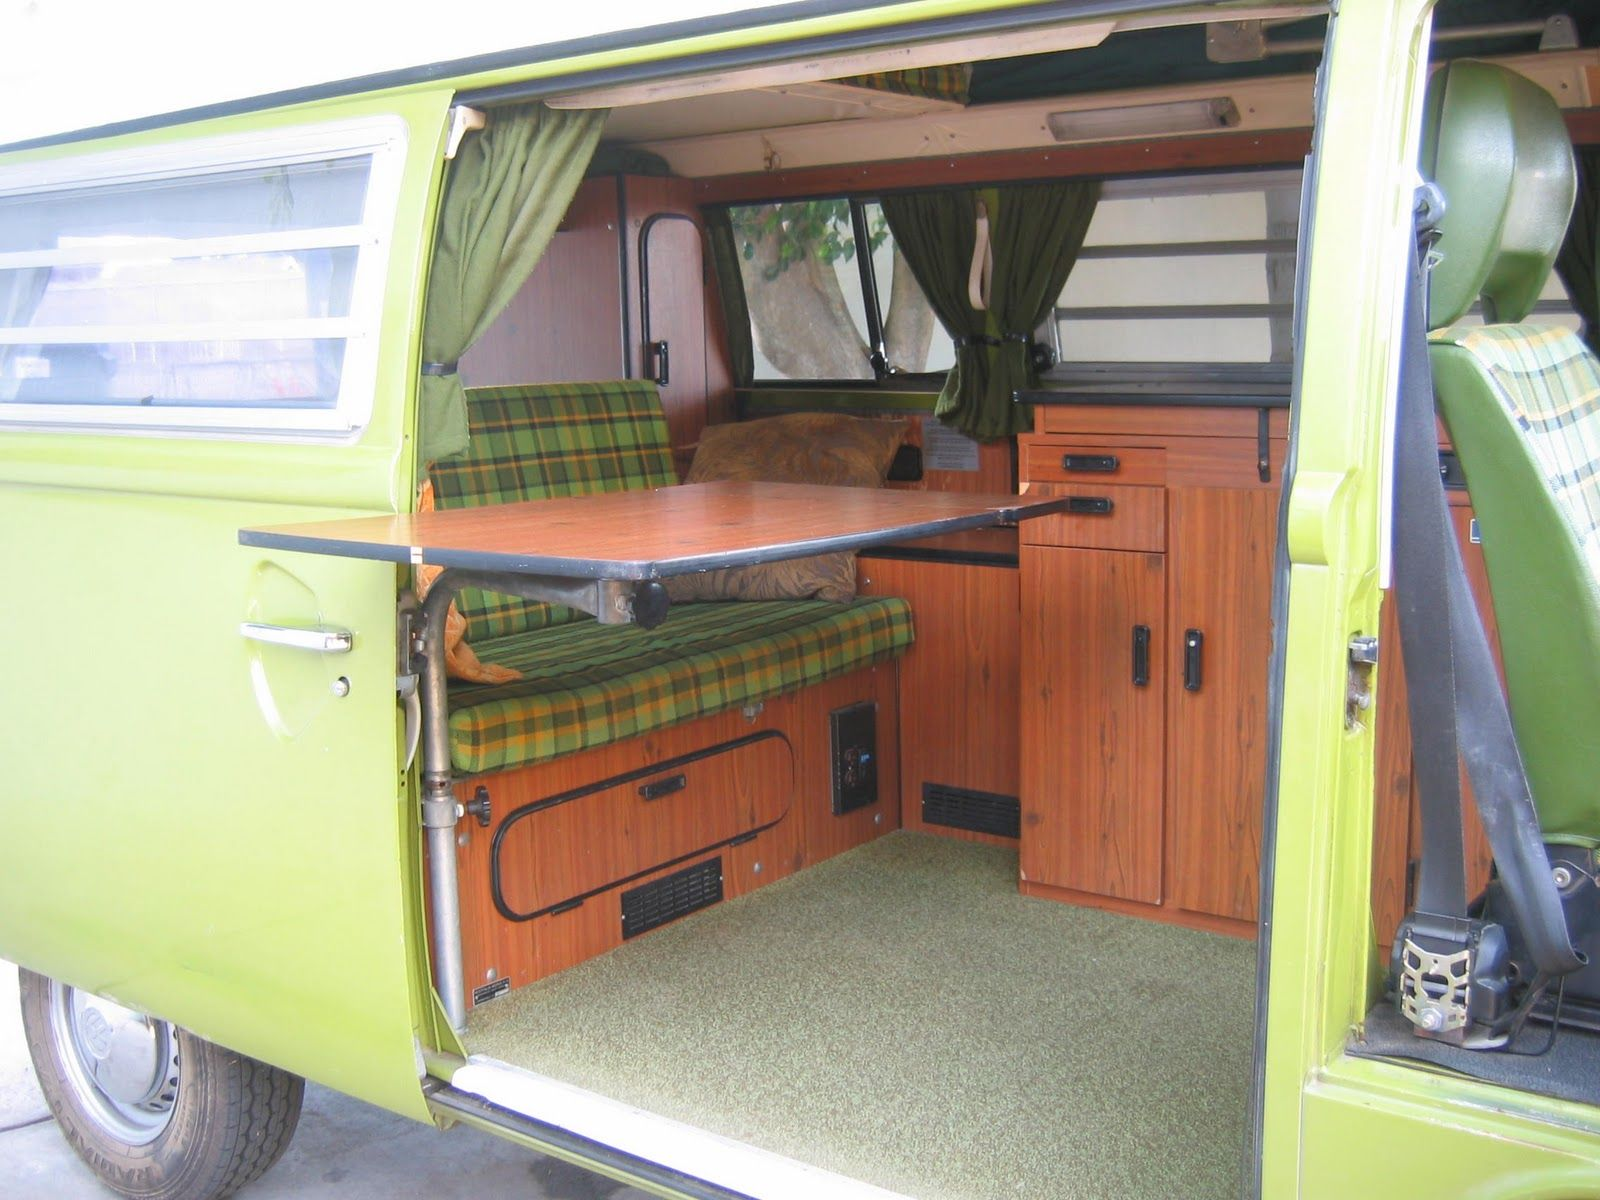 Interieur Buscamper Original Interior | Vw Bus | Volkswagen Interior, Vw Bus